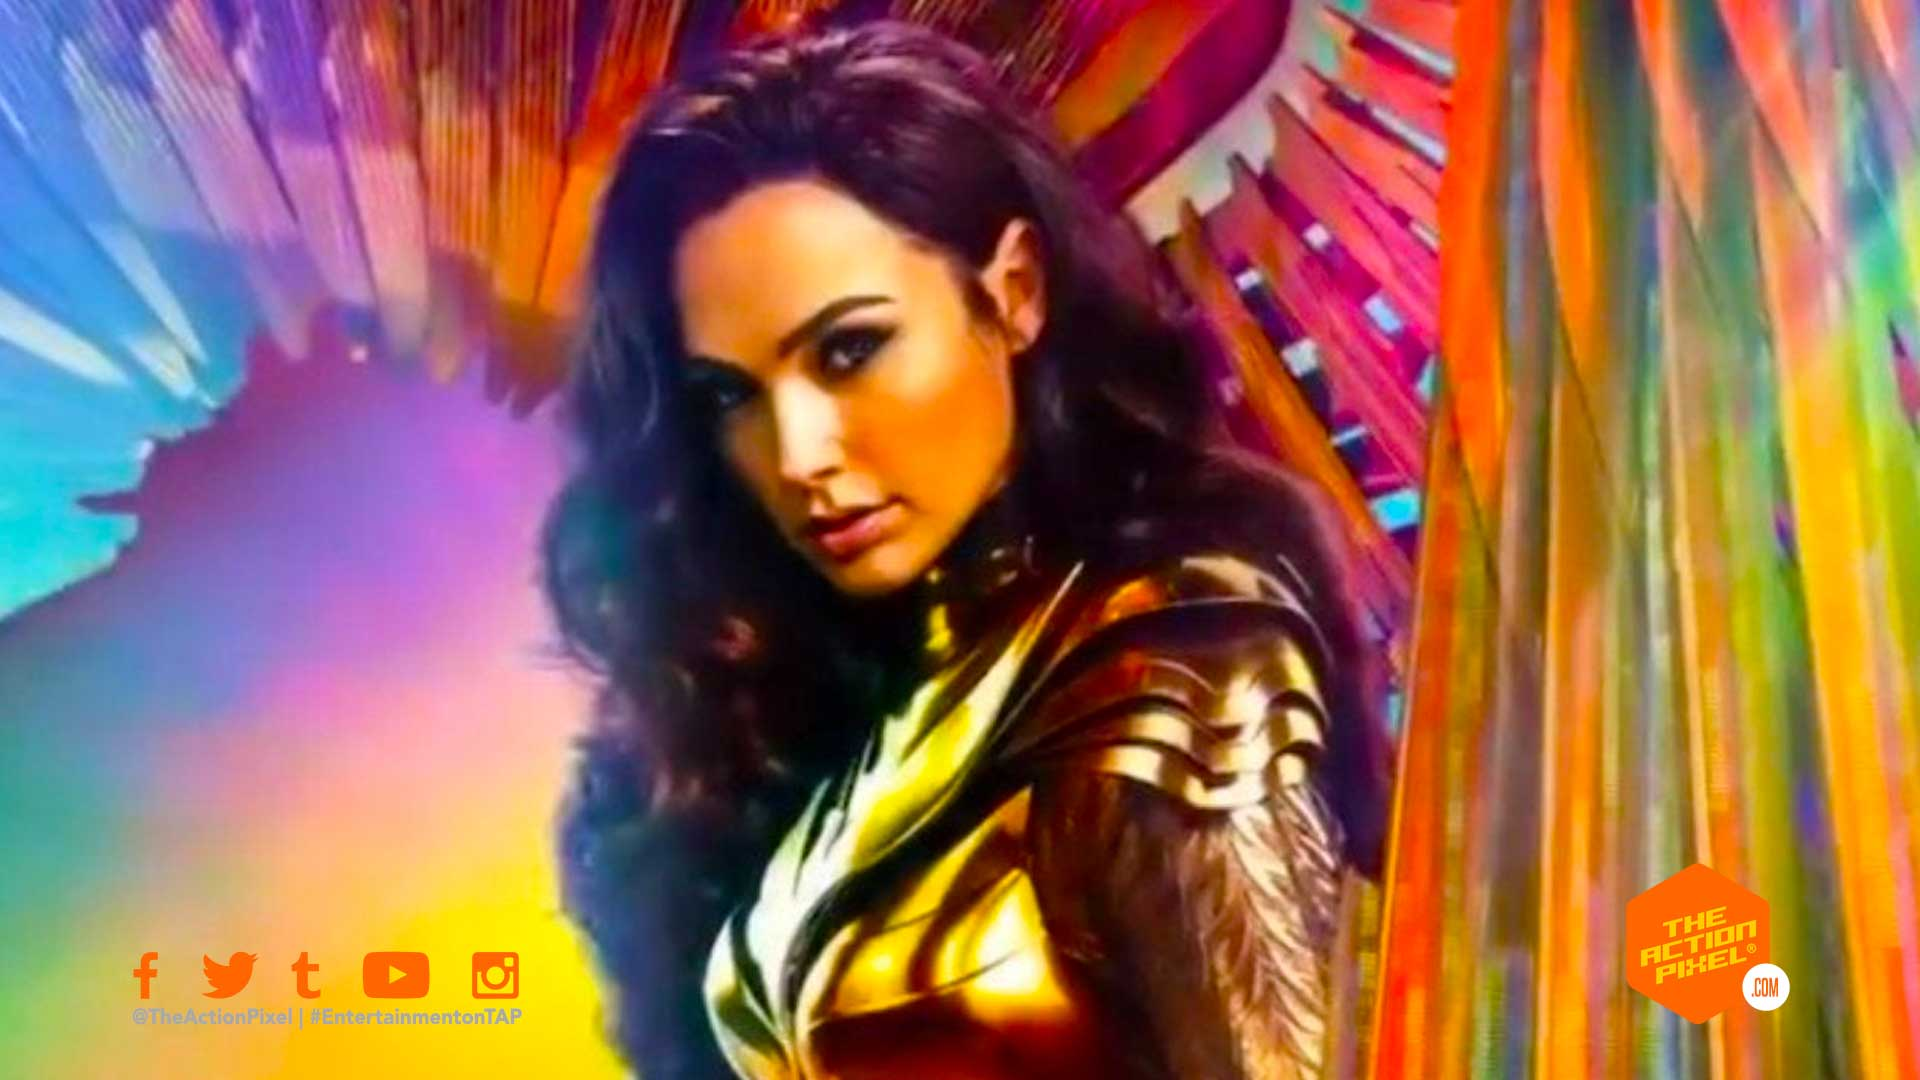 wonder woman, wonder woman 1984, ww 84, ww84, dc comics, the action pixel, featured, entertainment on tap, warner bros. pictures,